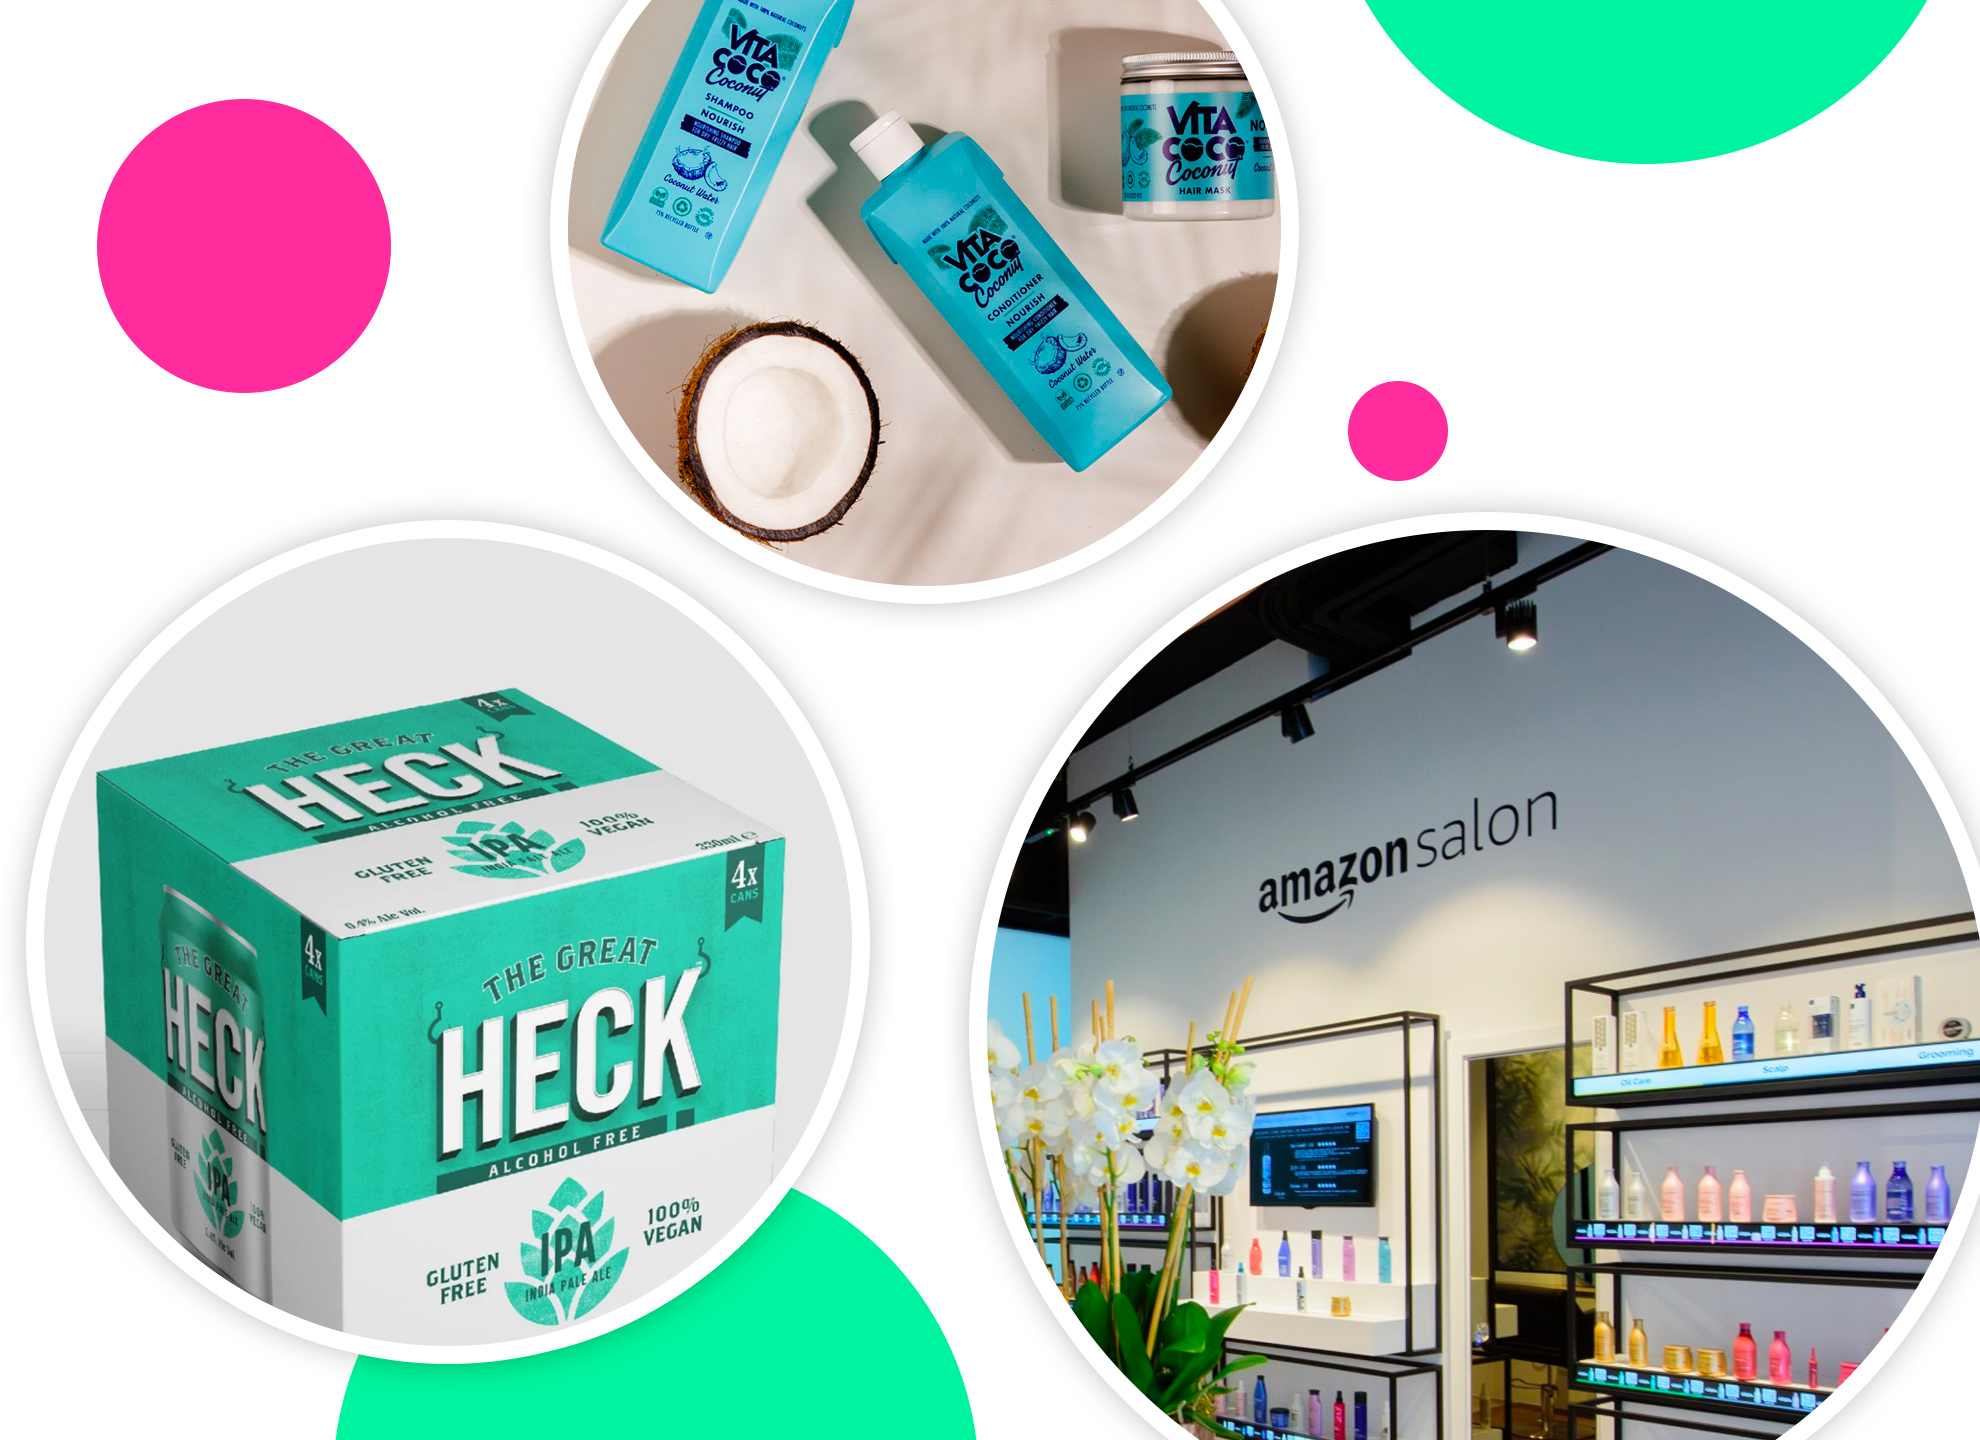 Haircare products from brands Amazon, Vita Coco and Heck